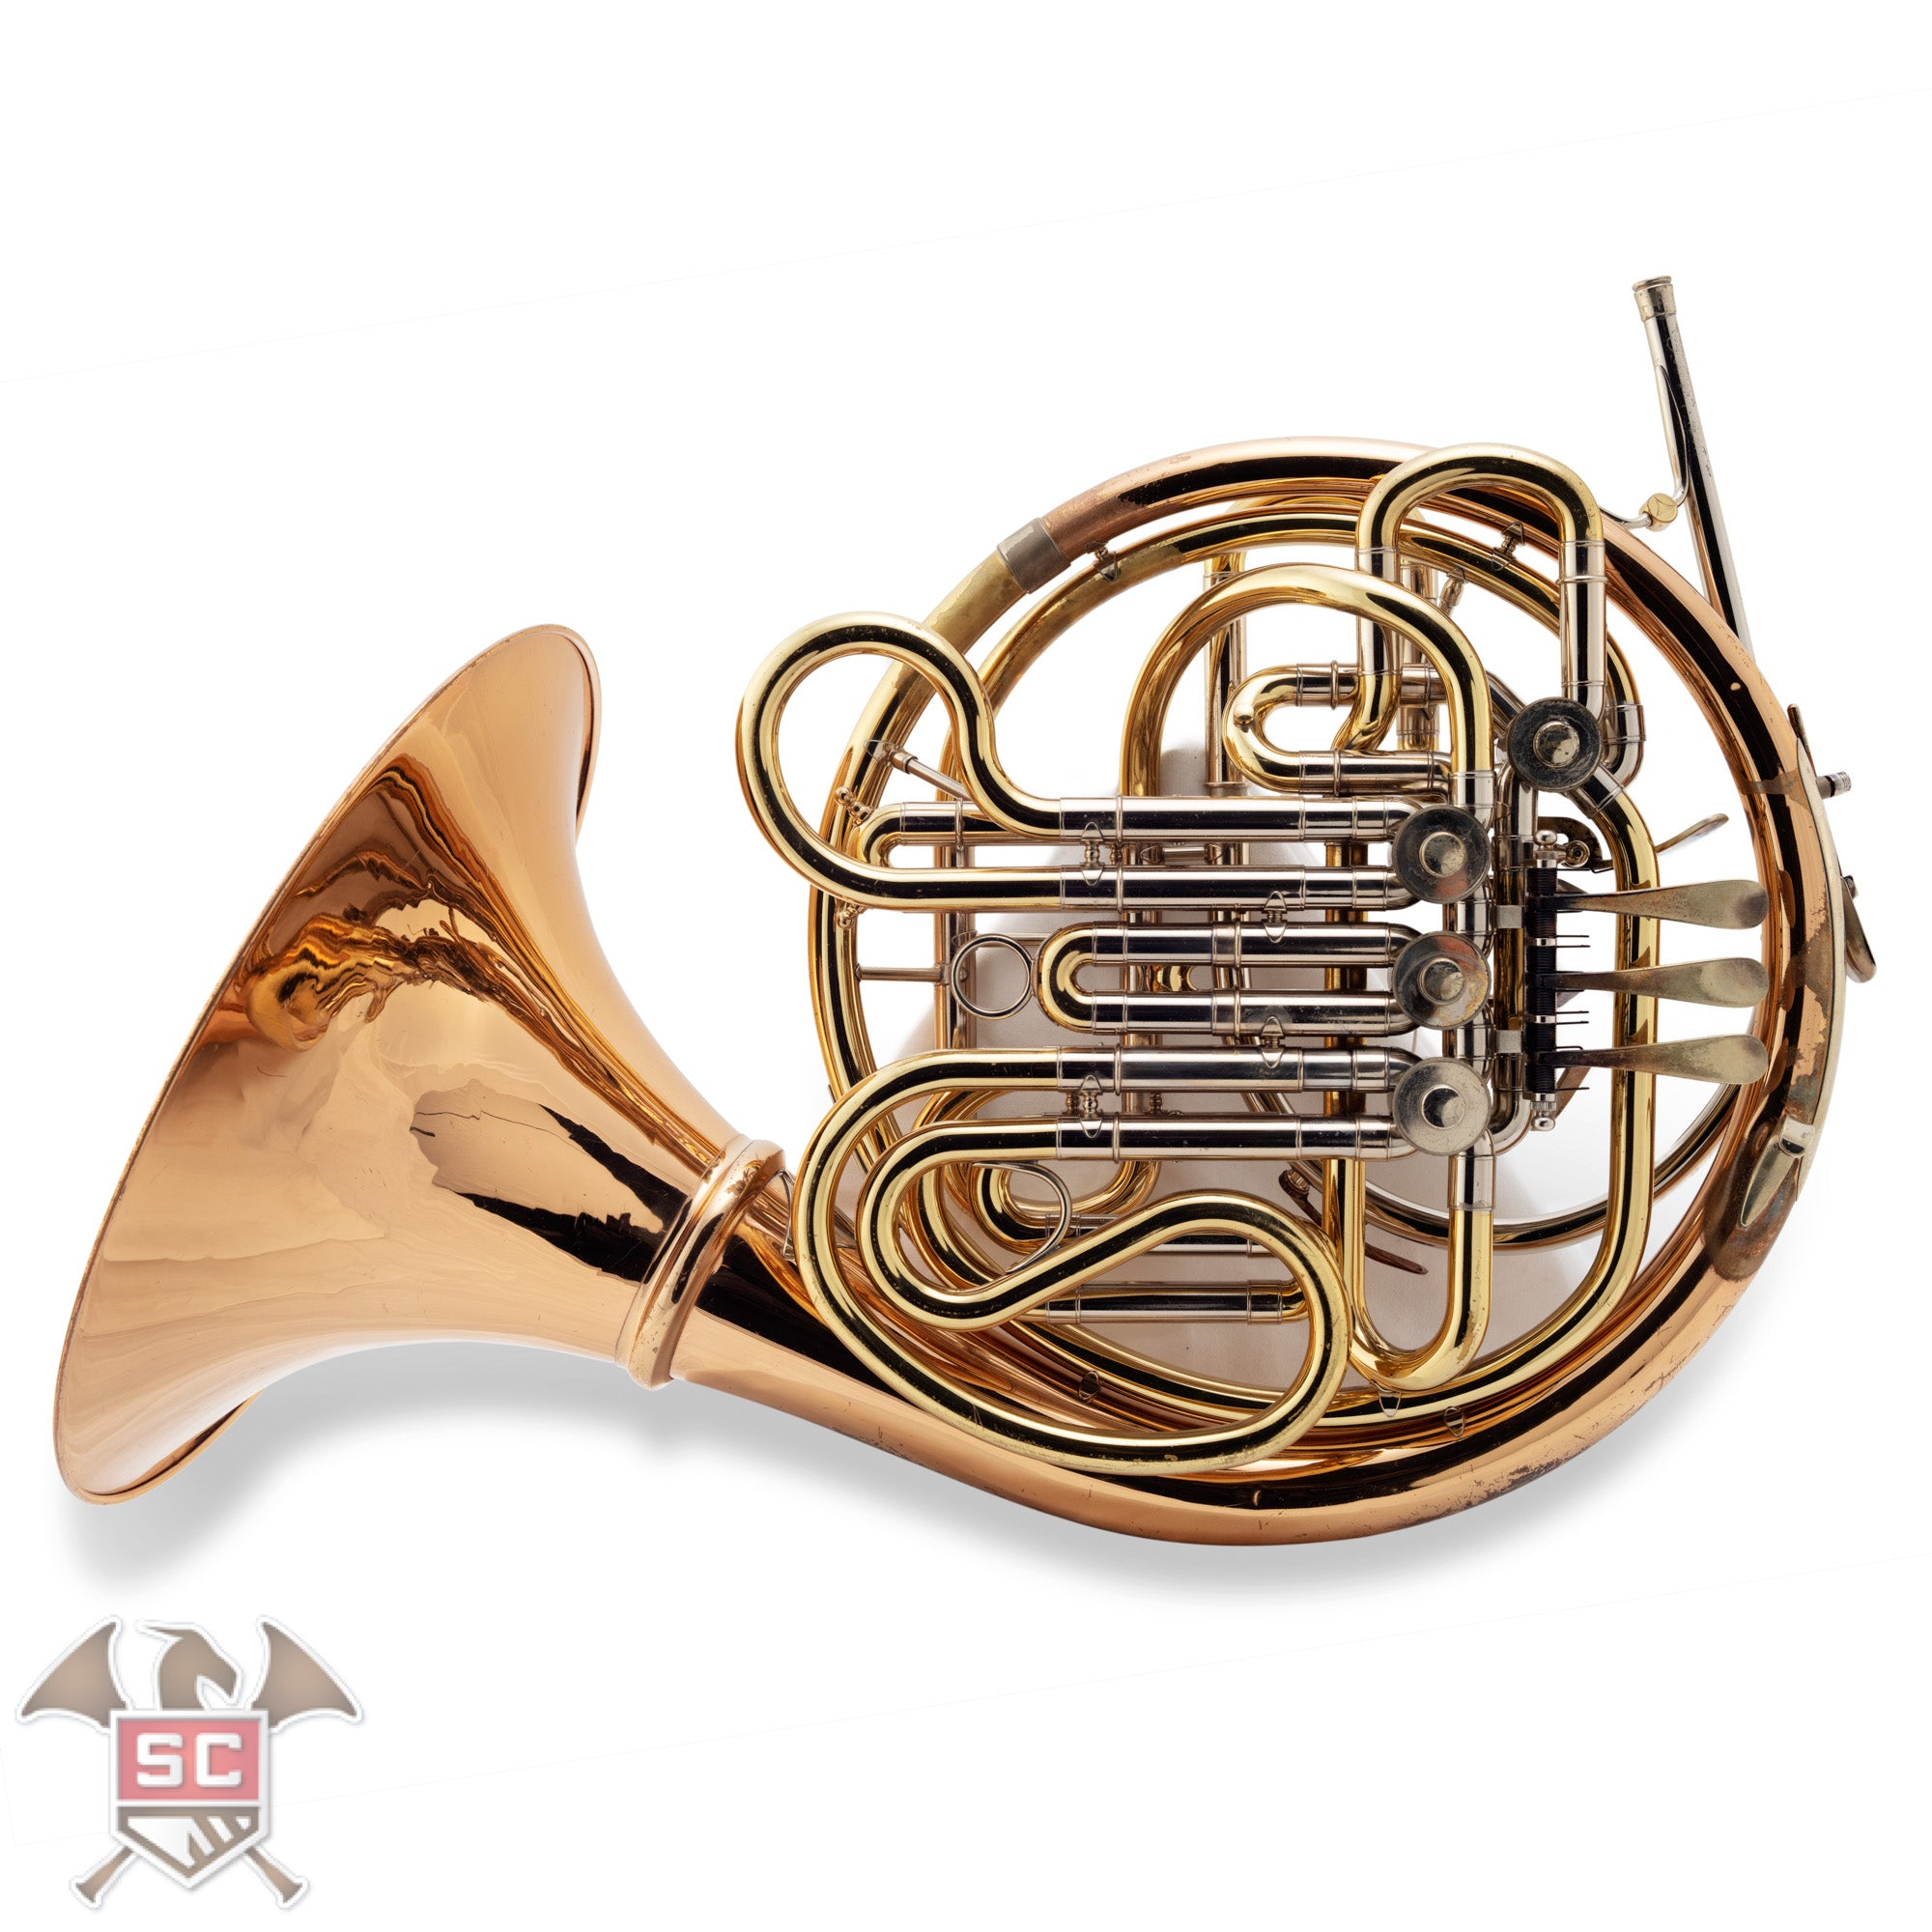 Used Holton Farkas Model 281 double french horn